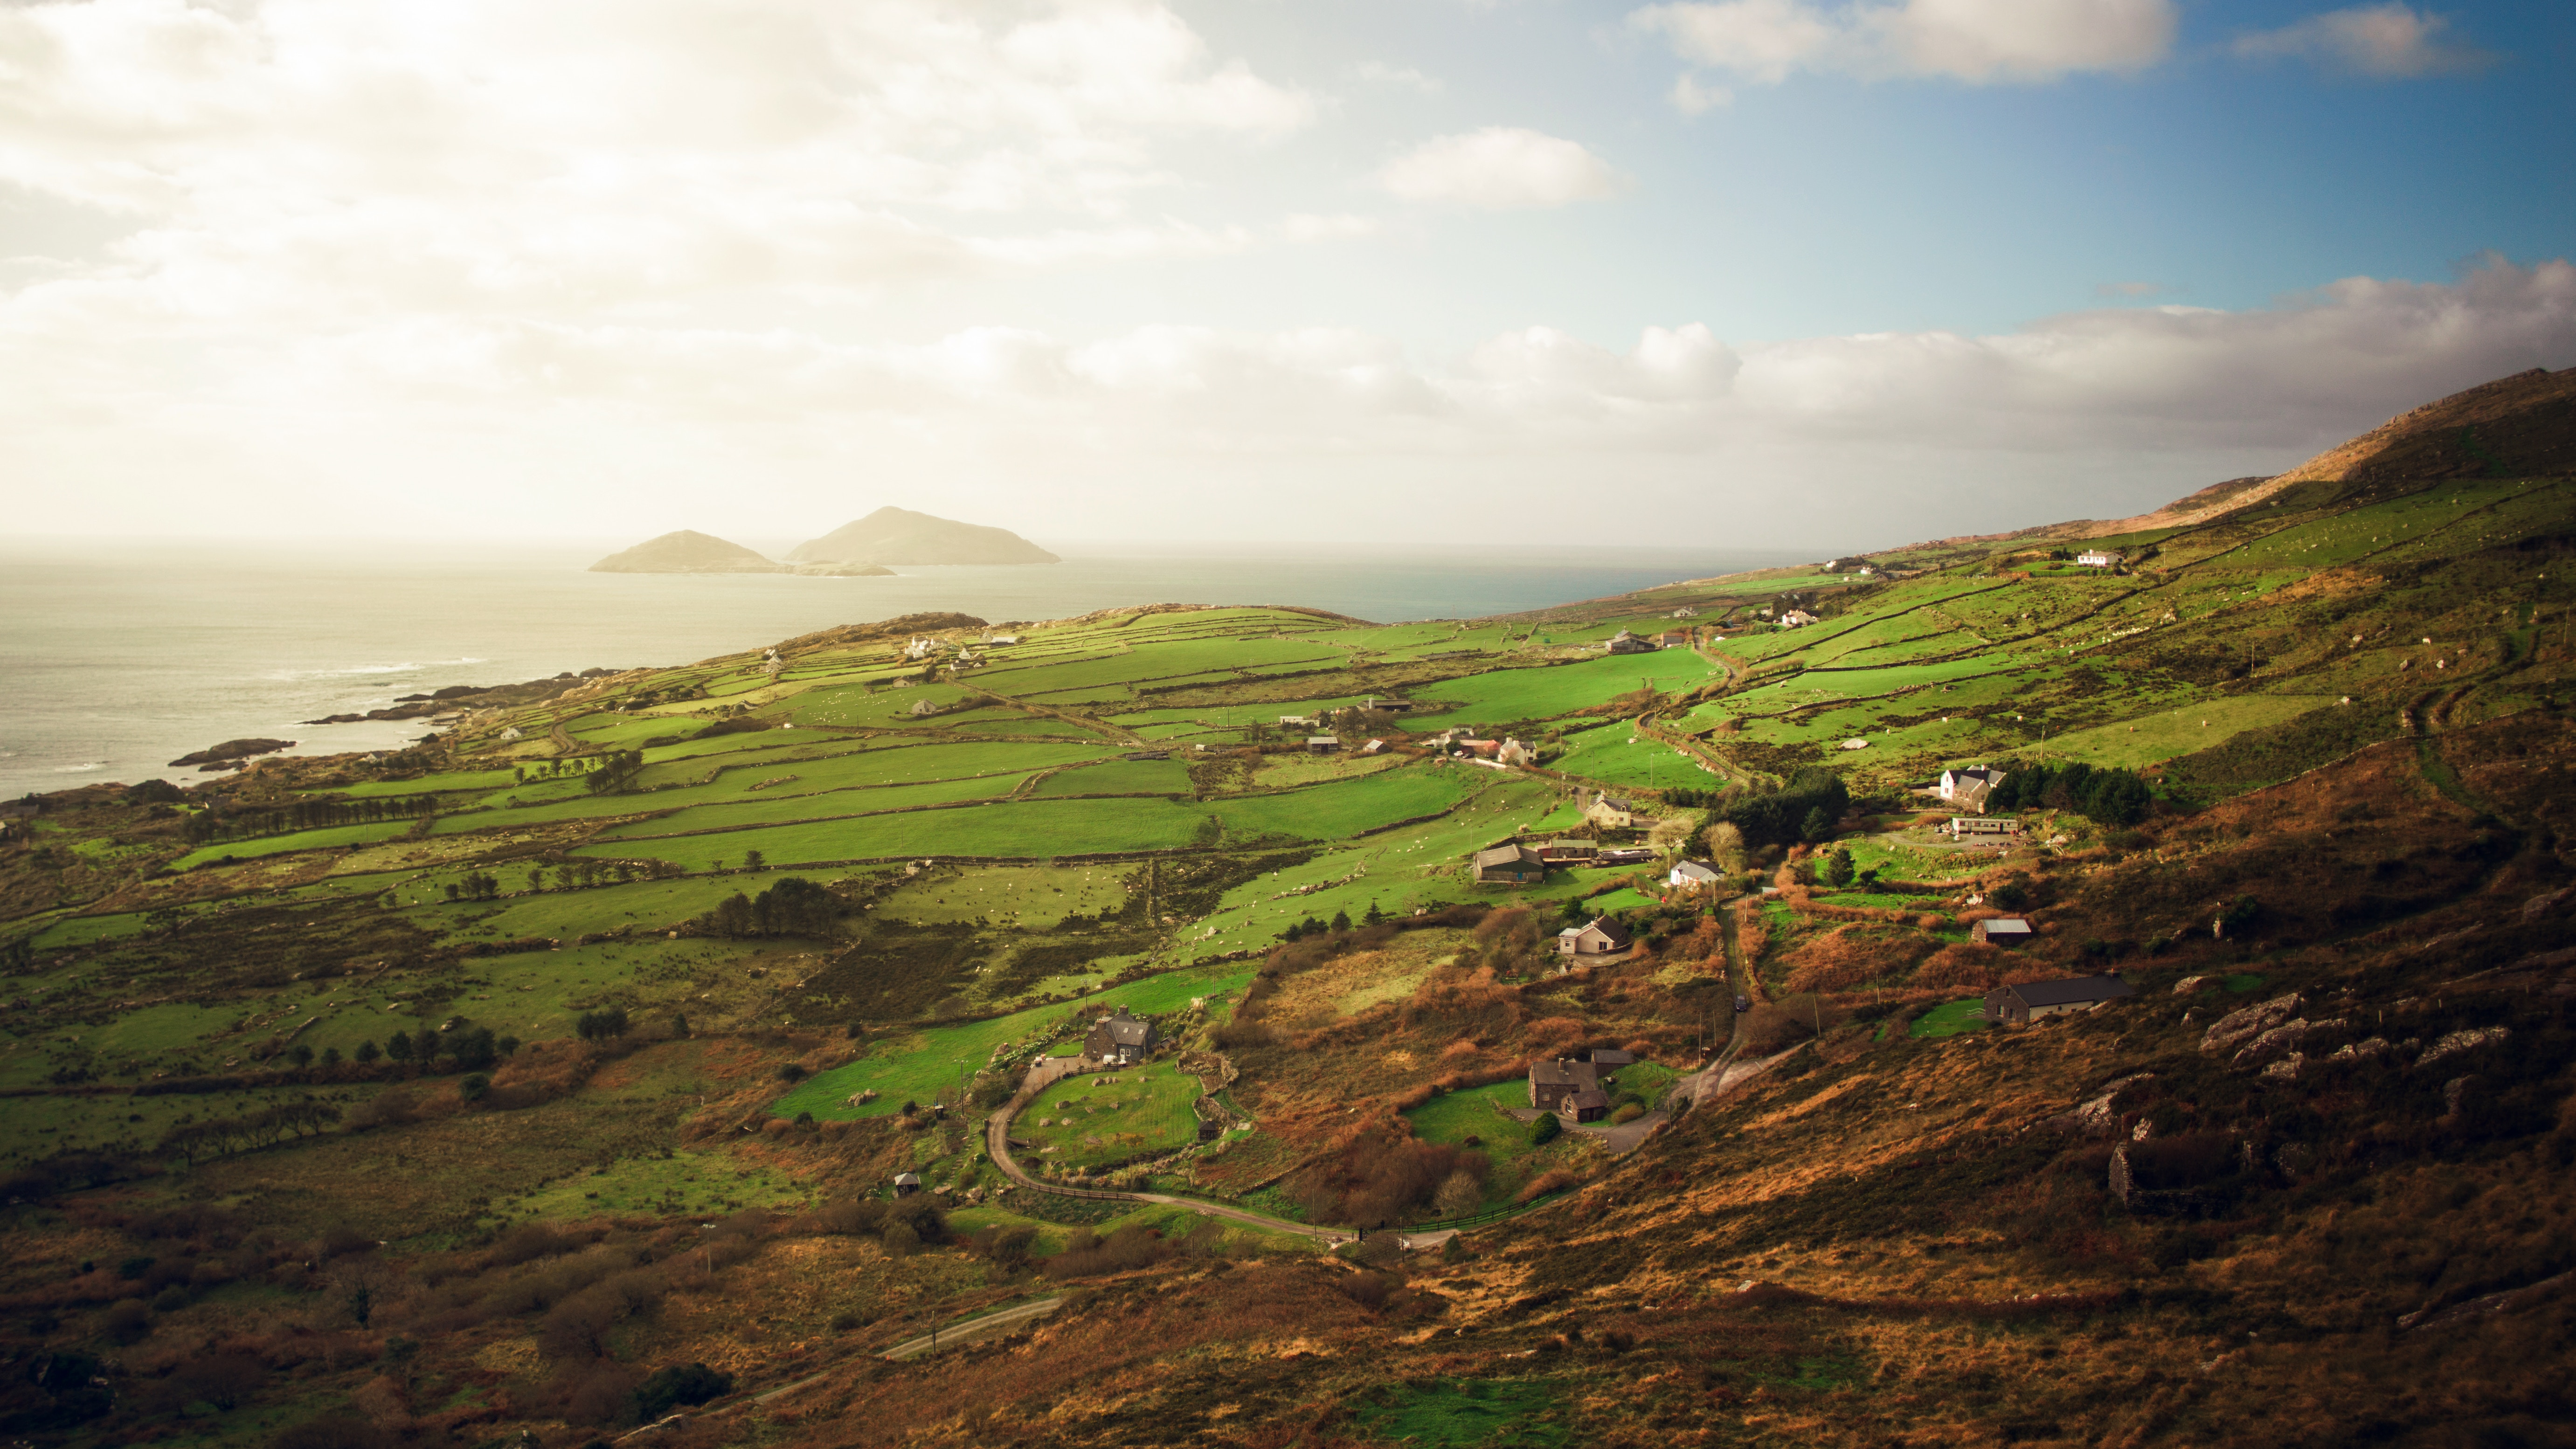 Image of the Irish countryside